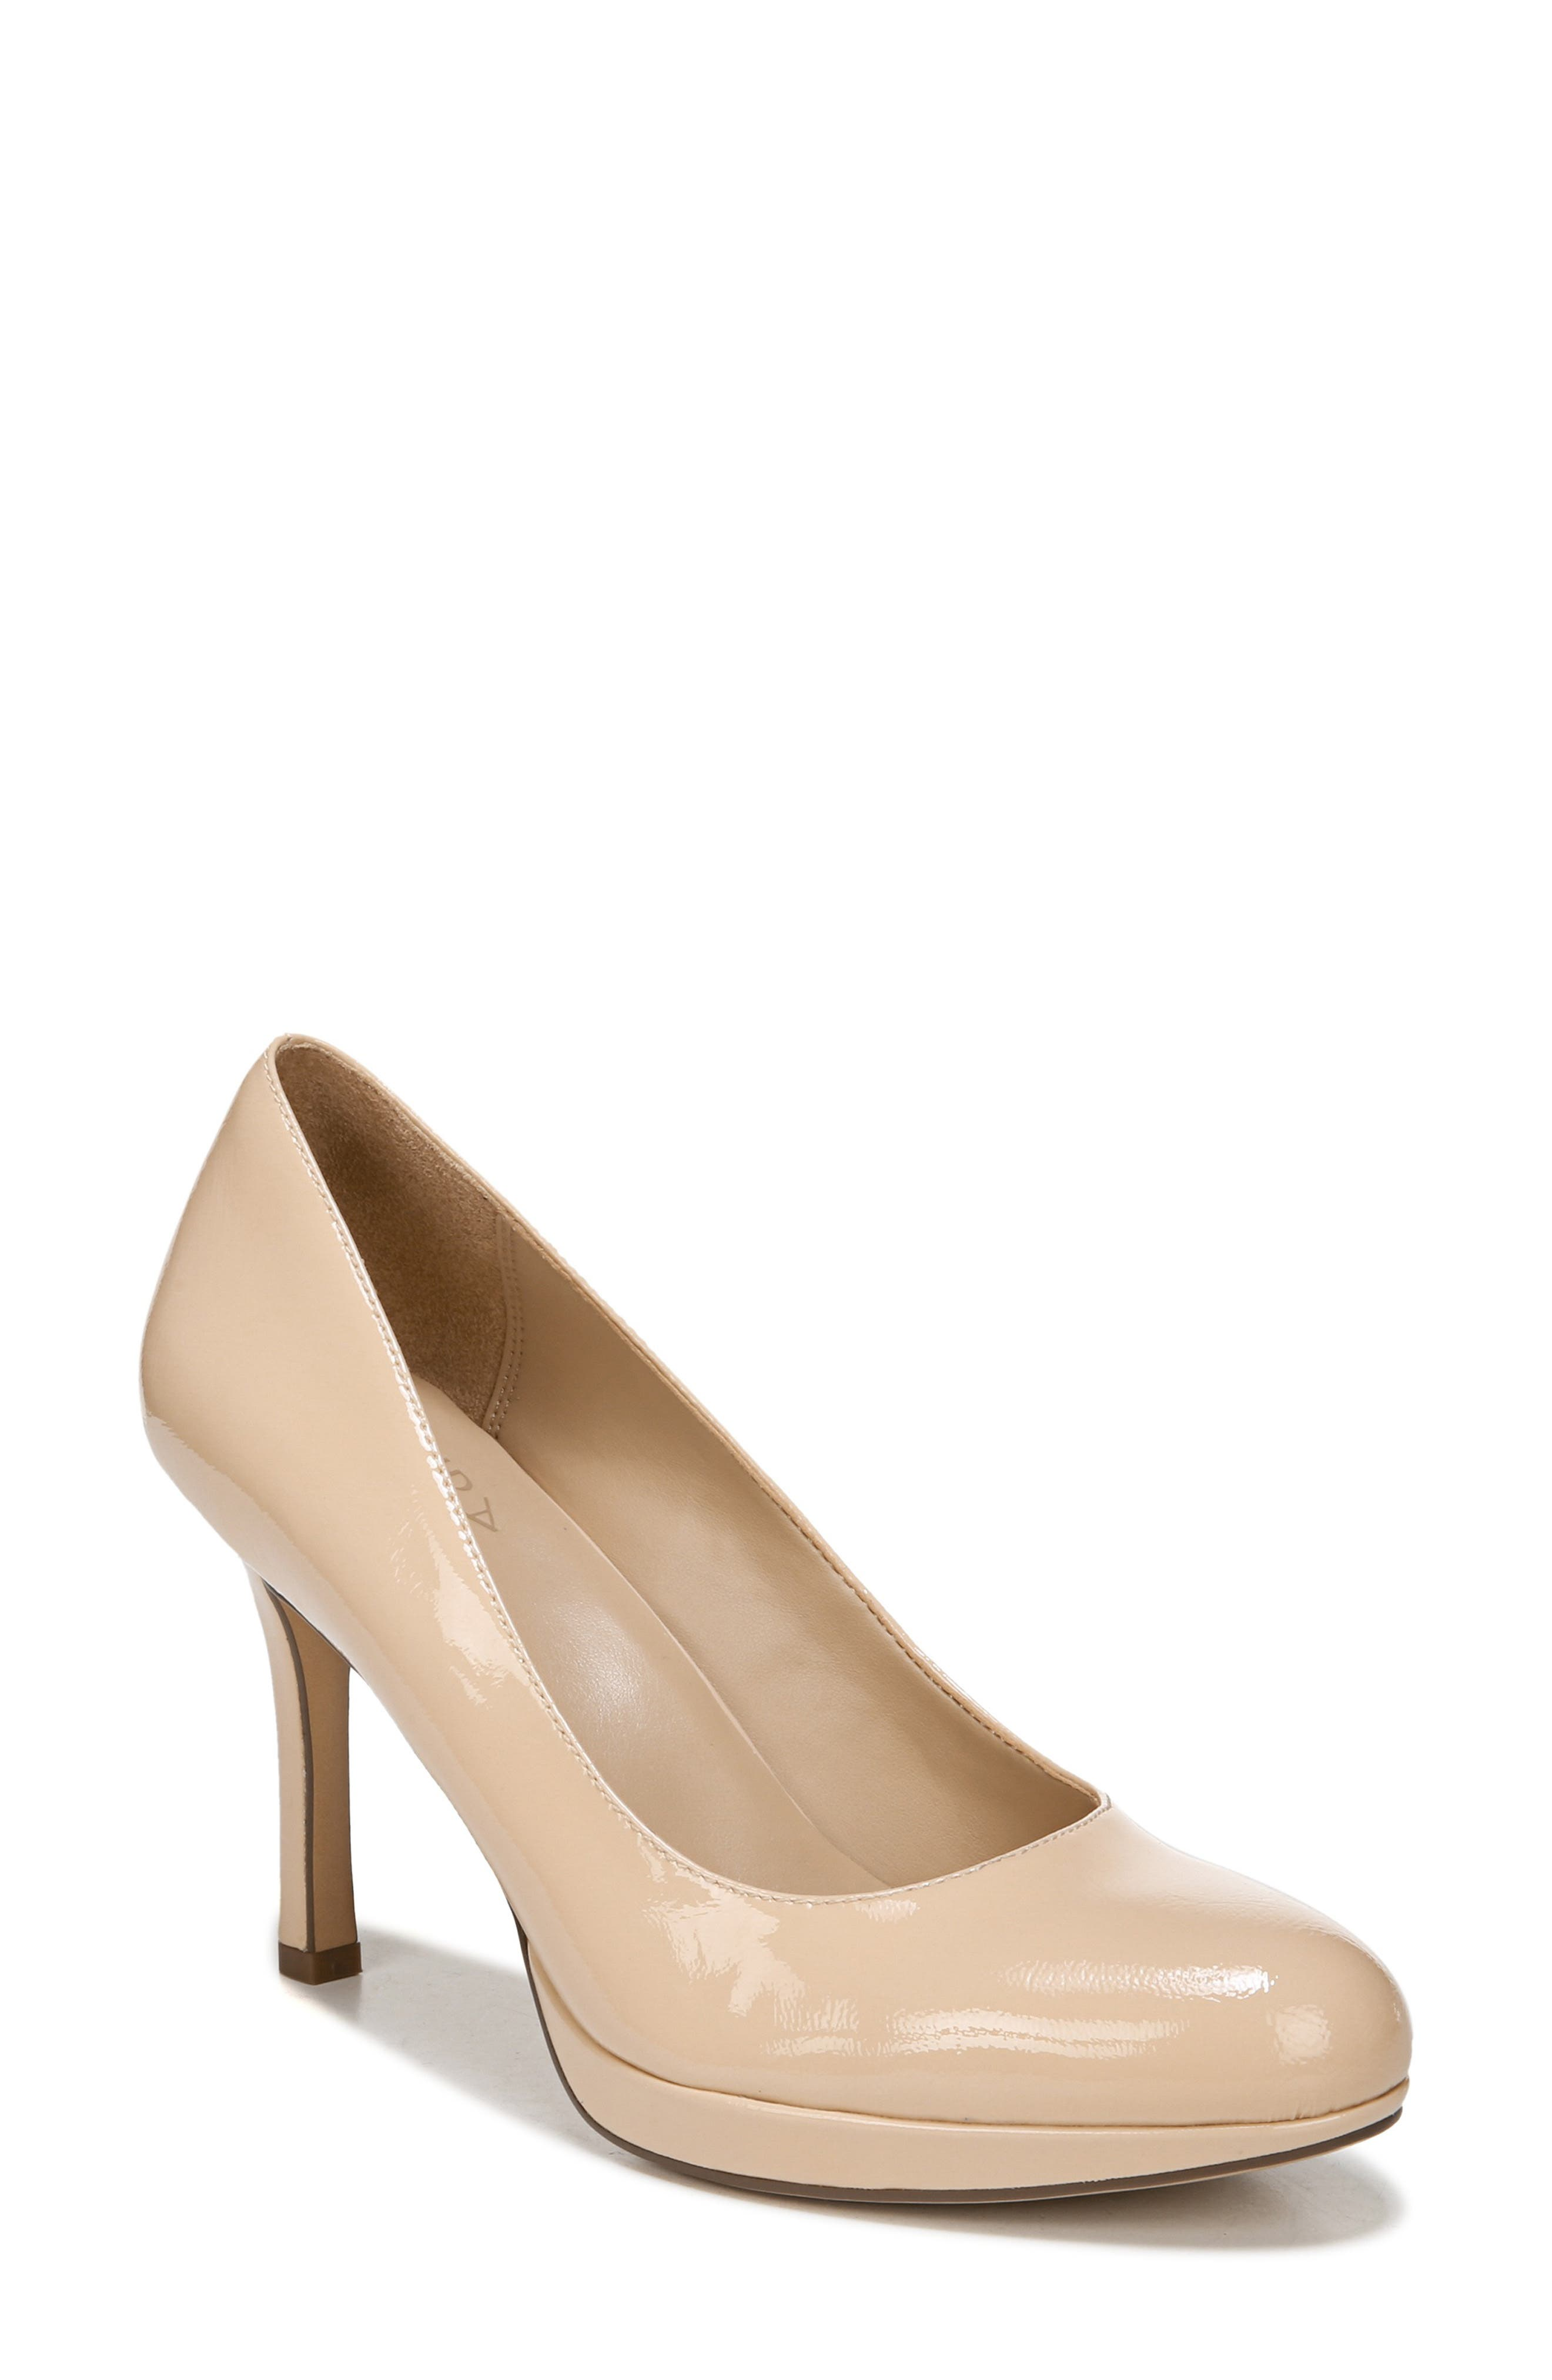 Naturalizer Celina Almond Toe Pump N - Beige